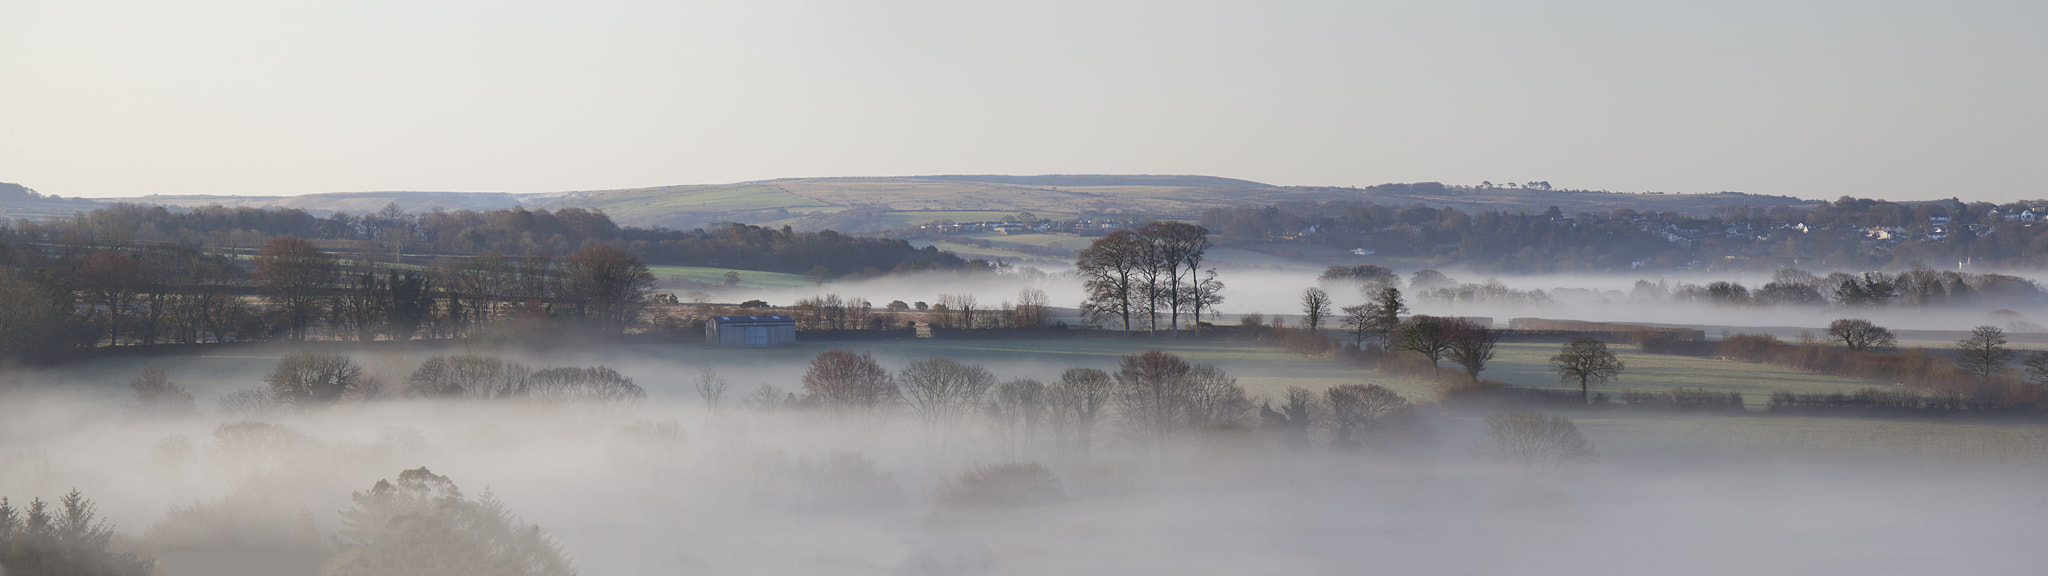 Photograph Mist over Dartmoor by Daniel Hannabuss on 500px